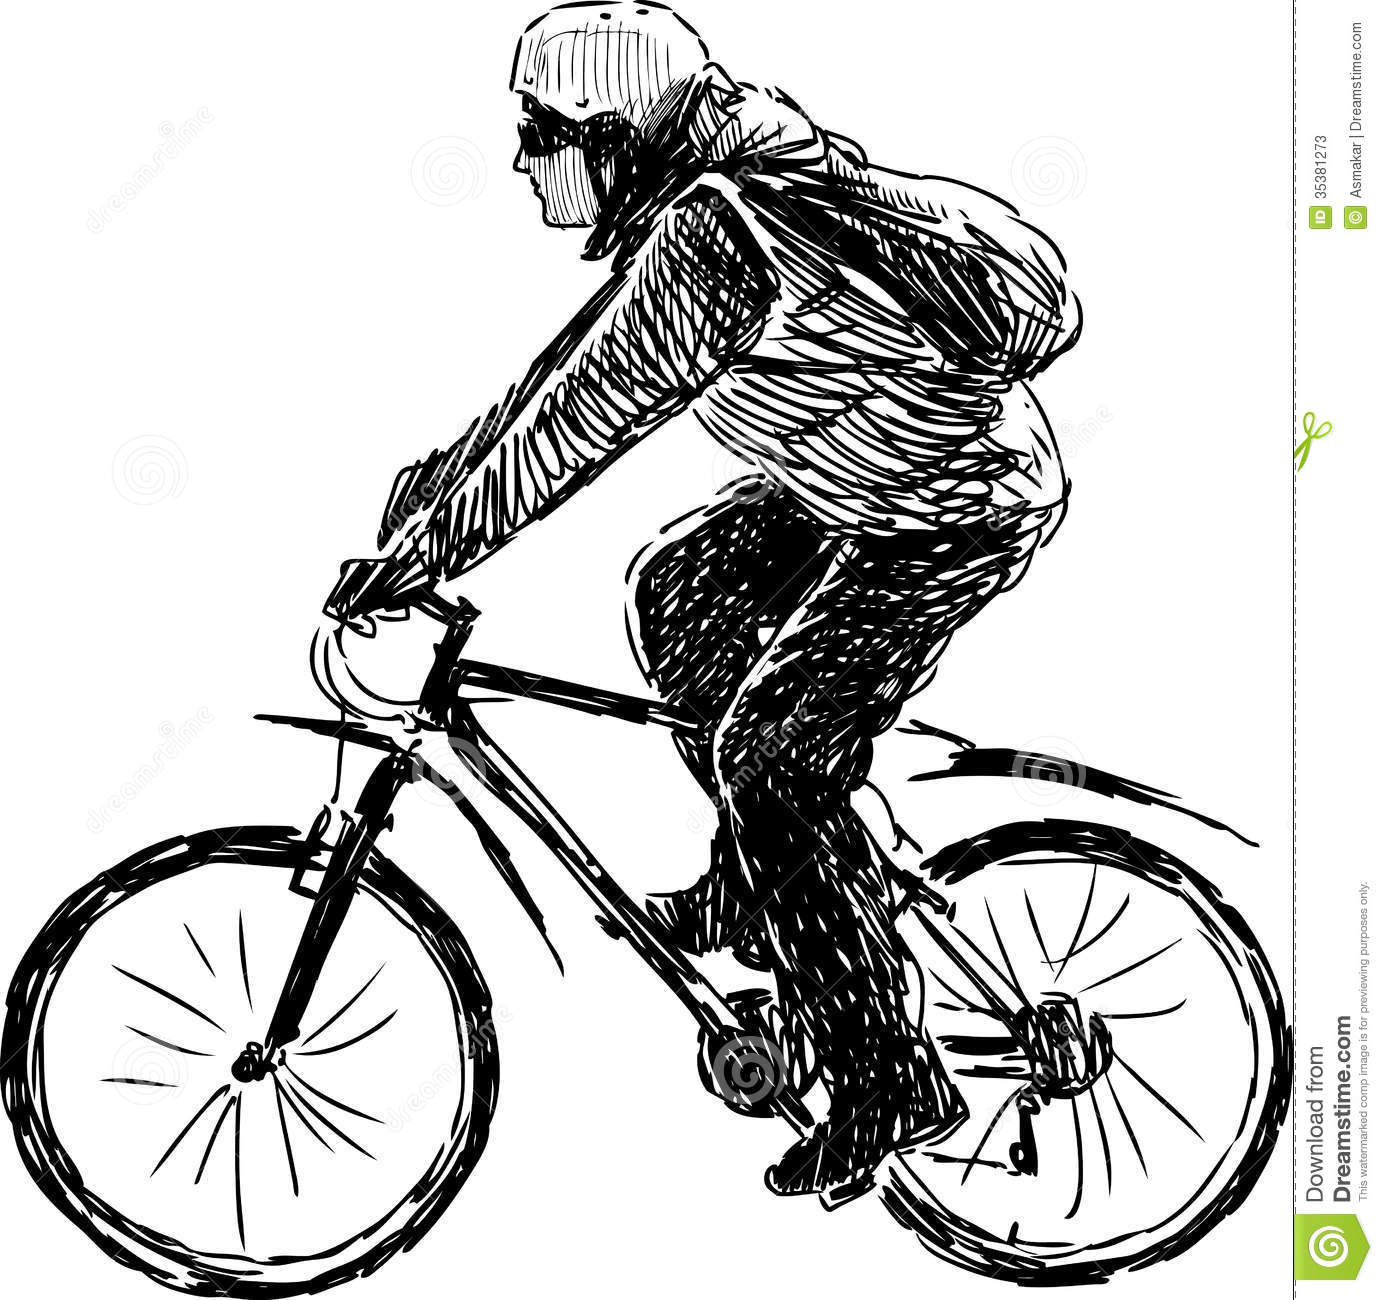 Cycle clipart bicycle drawing. Person riding a bike banner black and white download